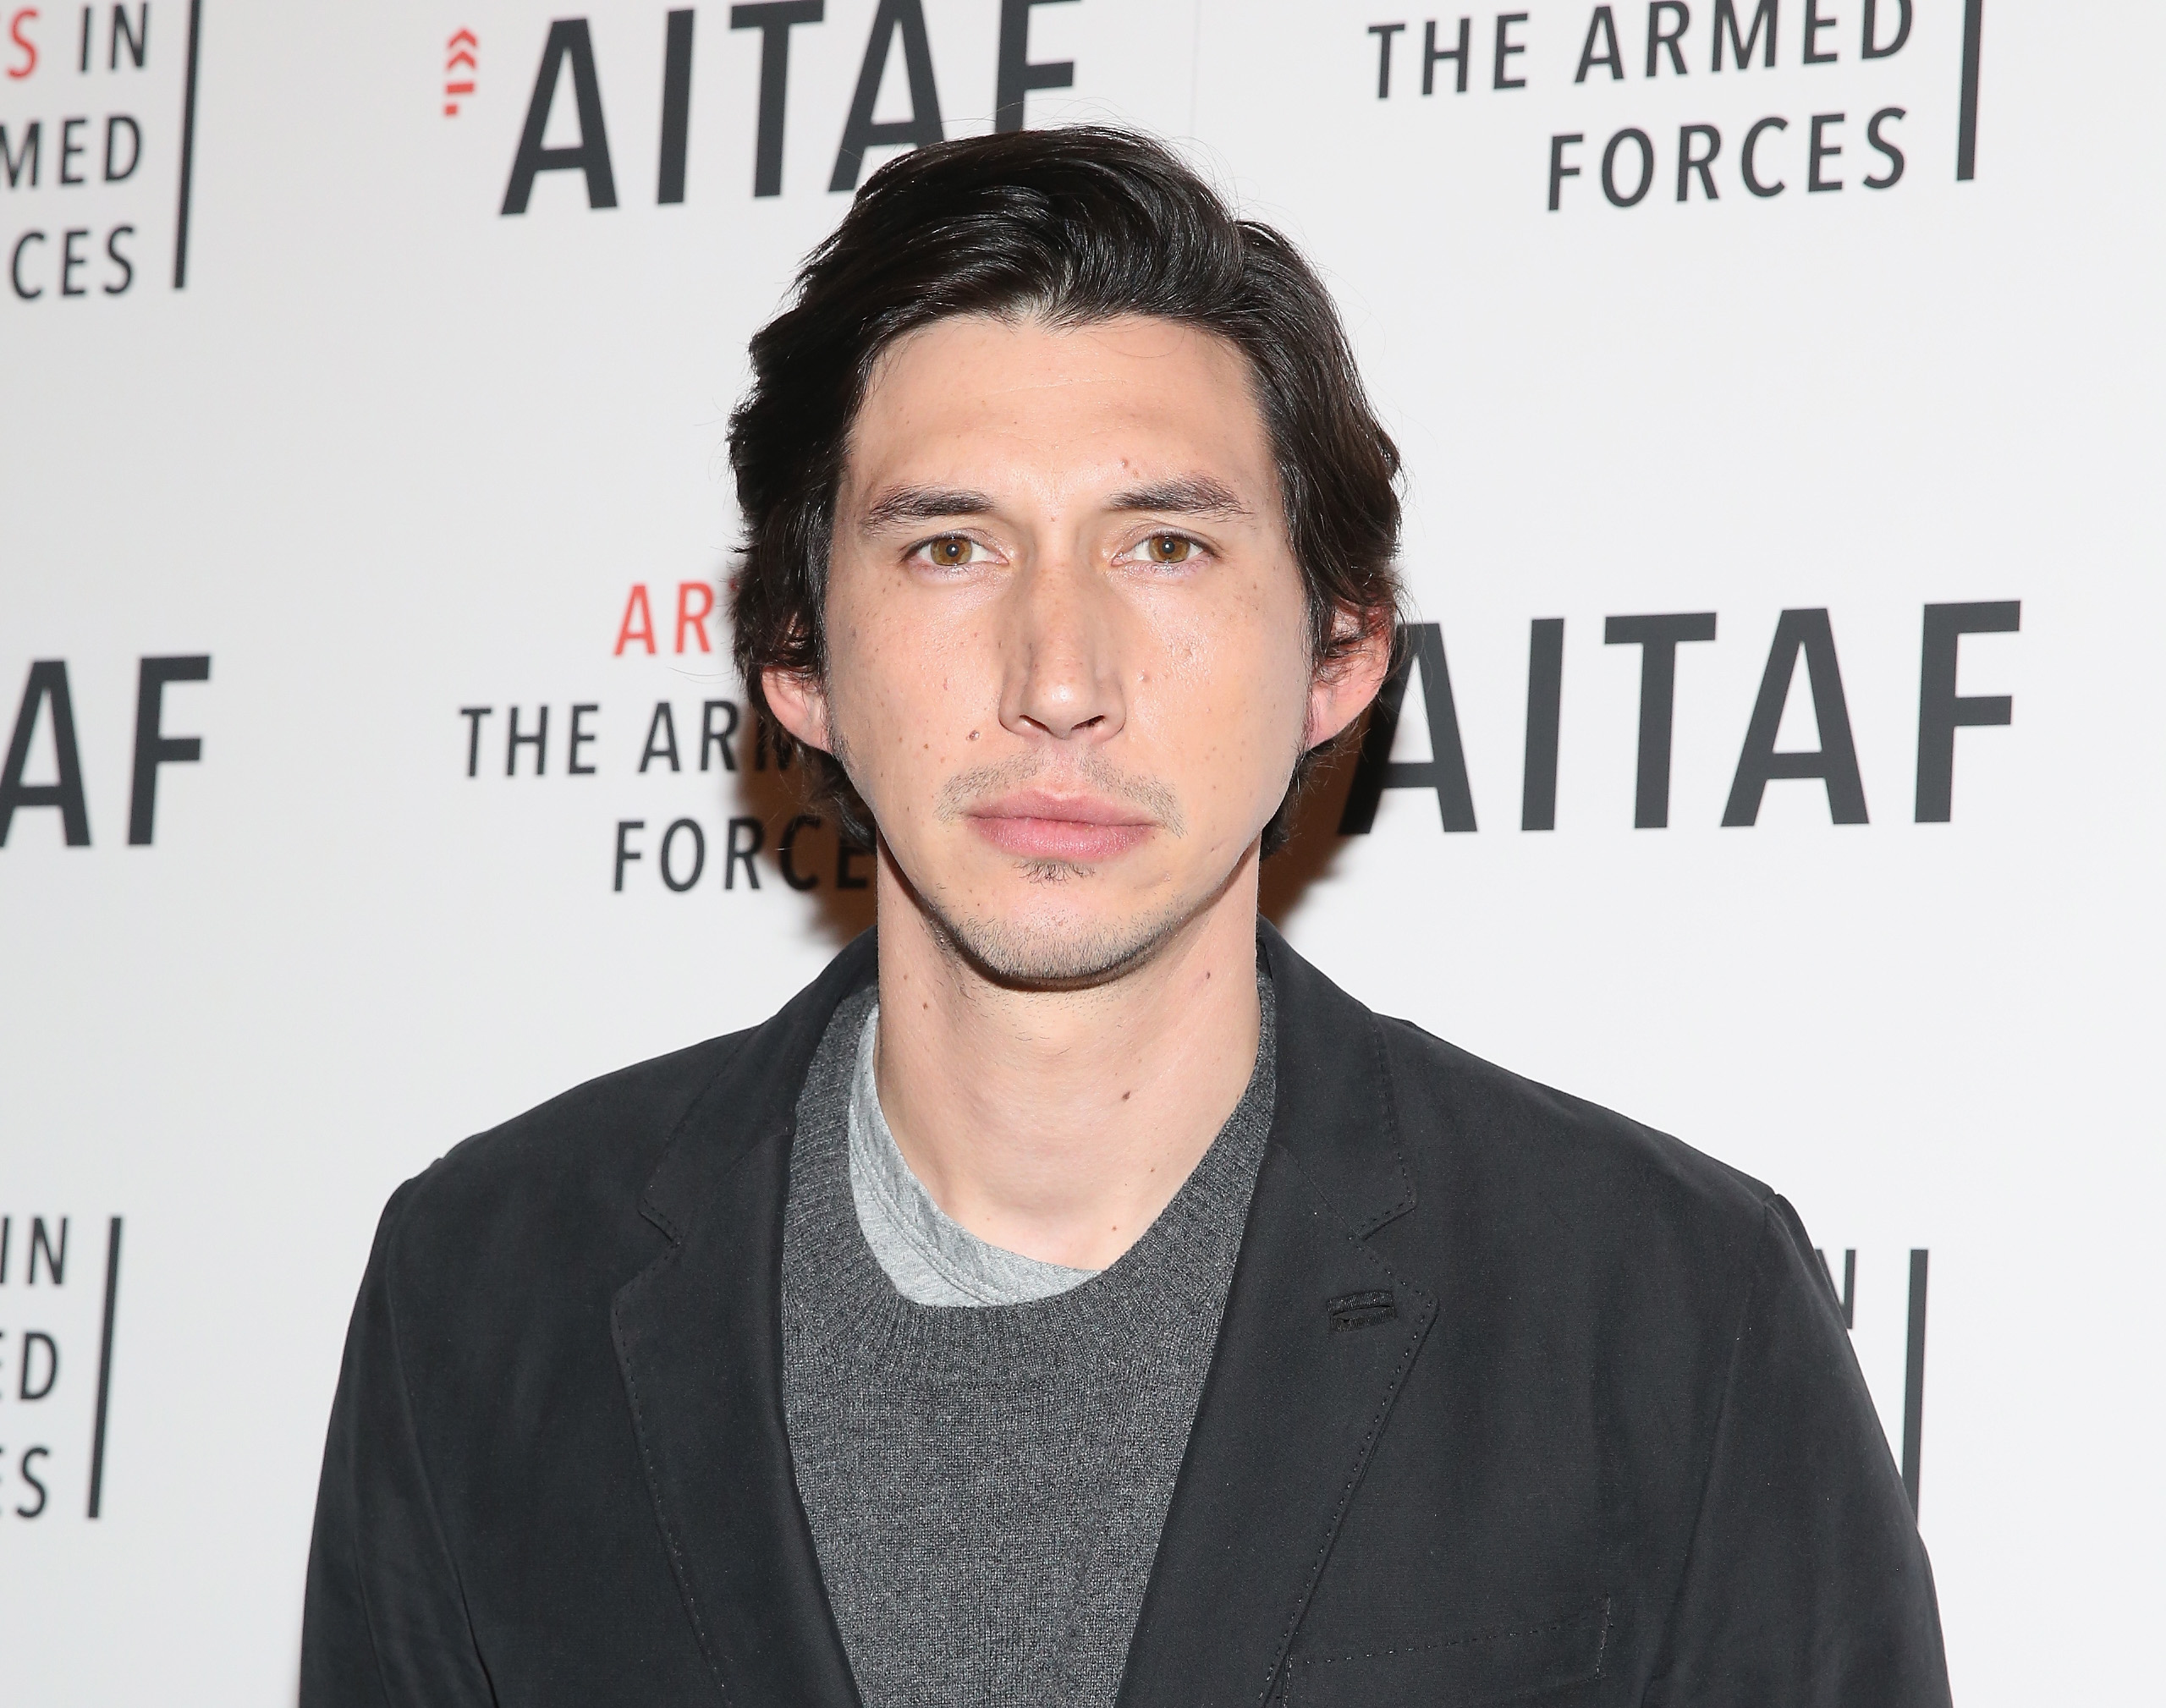 Adam Driver is seen on Nov. 9, 2015 in New York City.